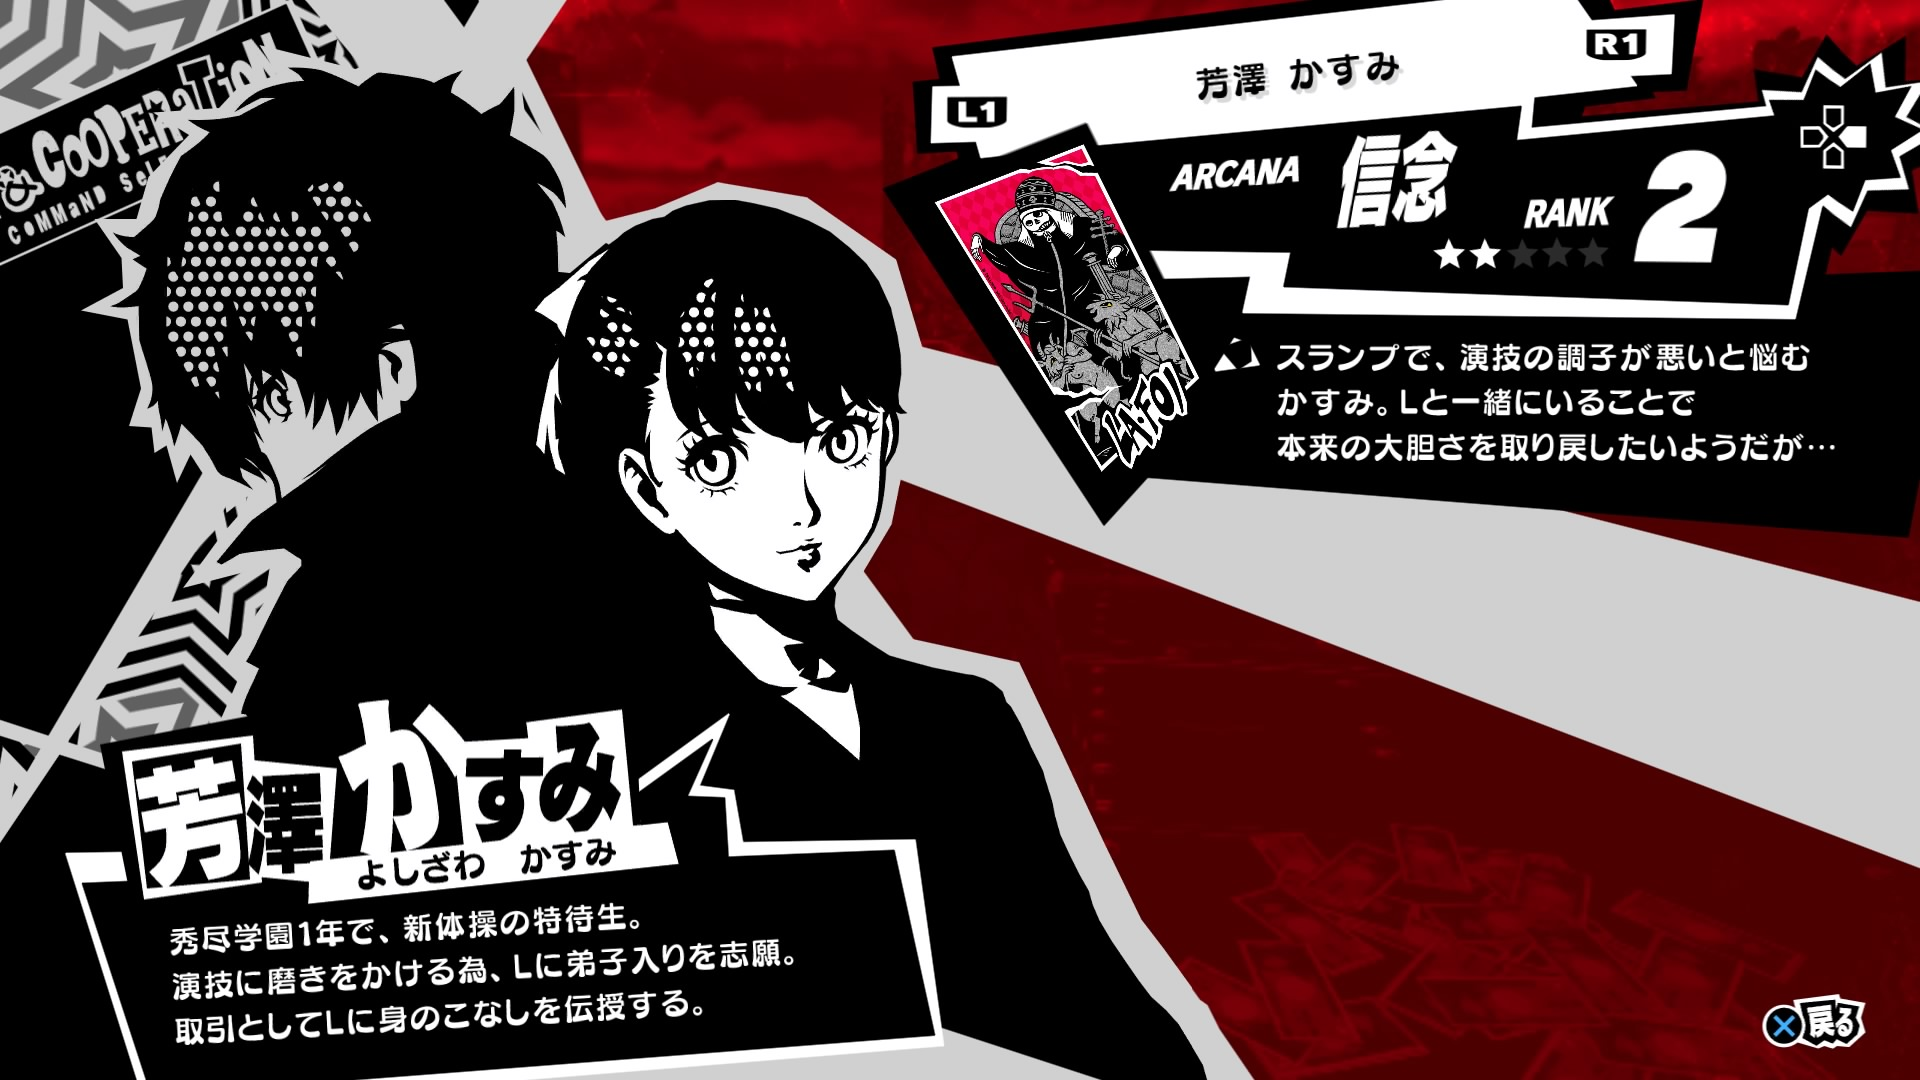 Persona 5 Royal menu